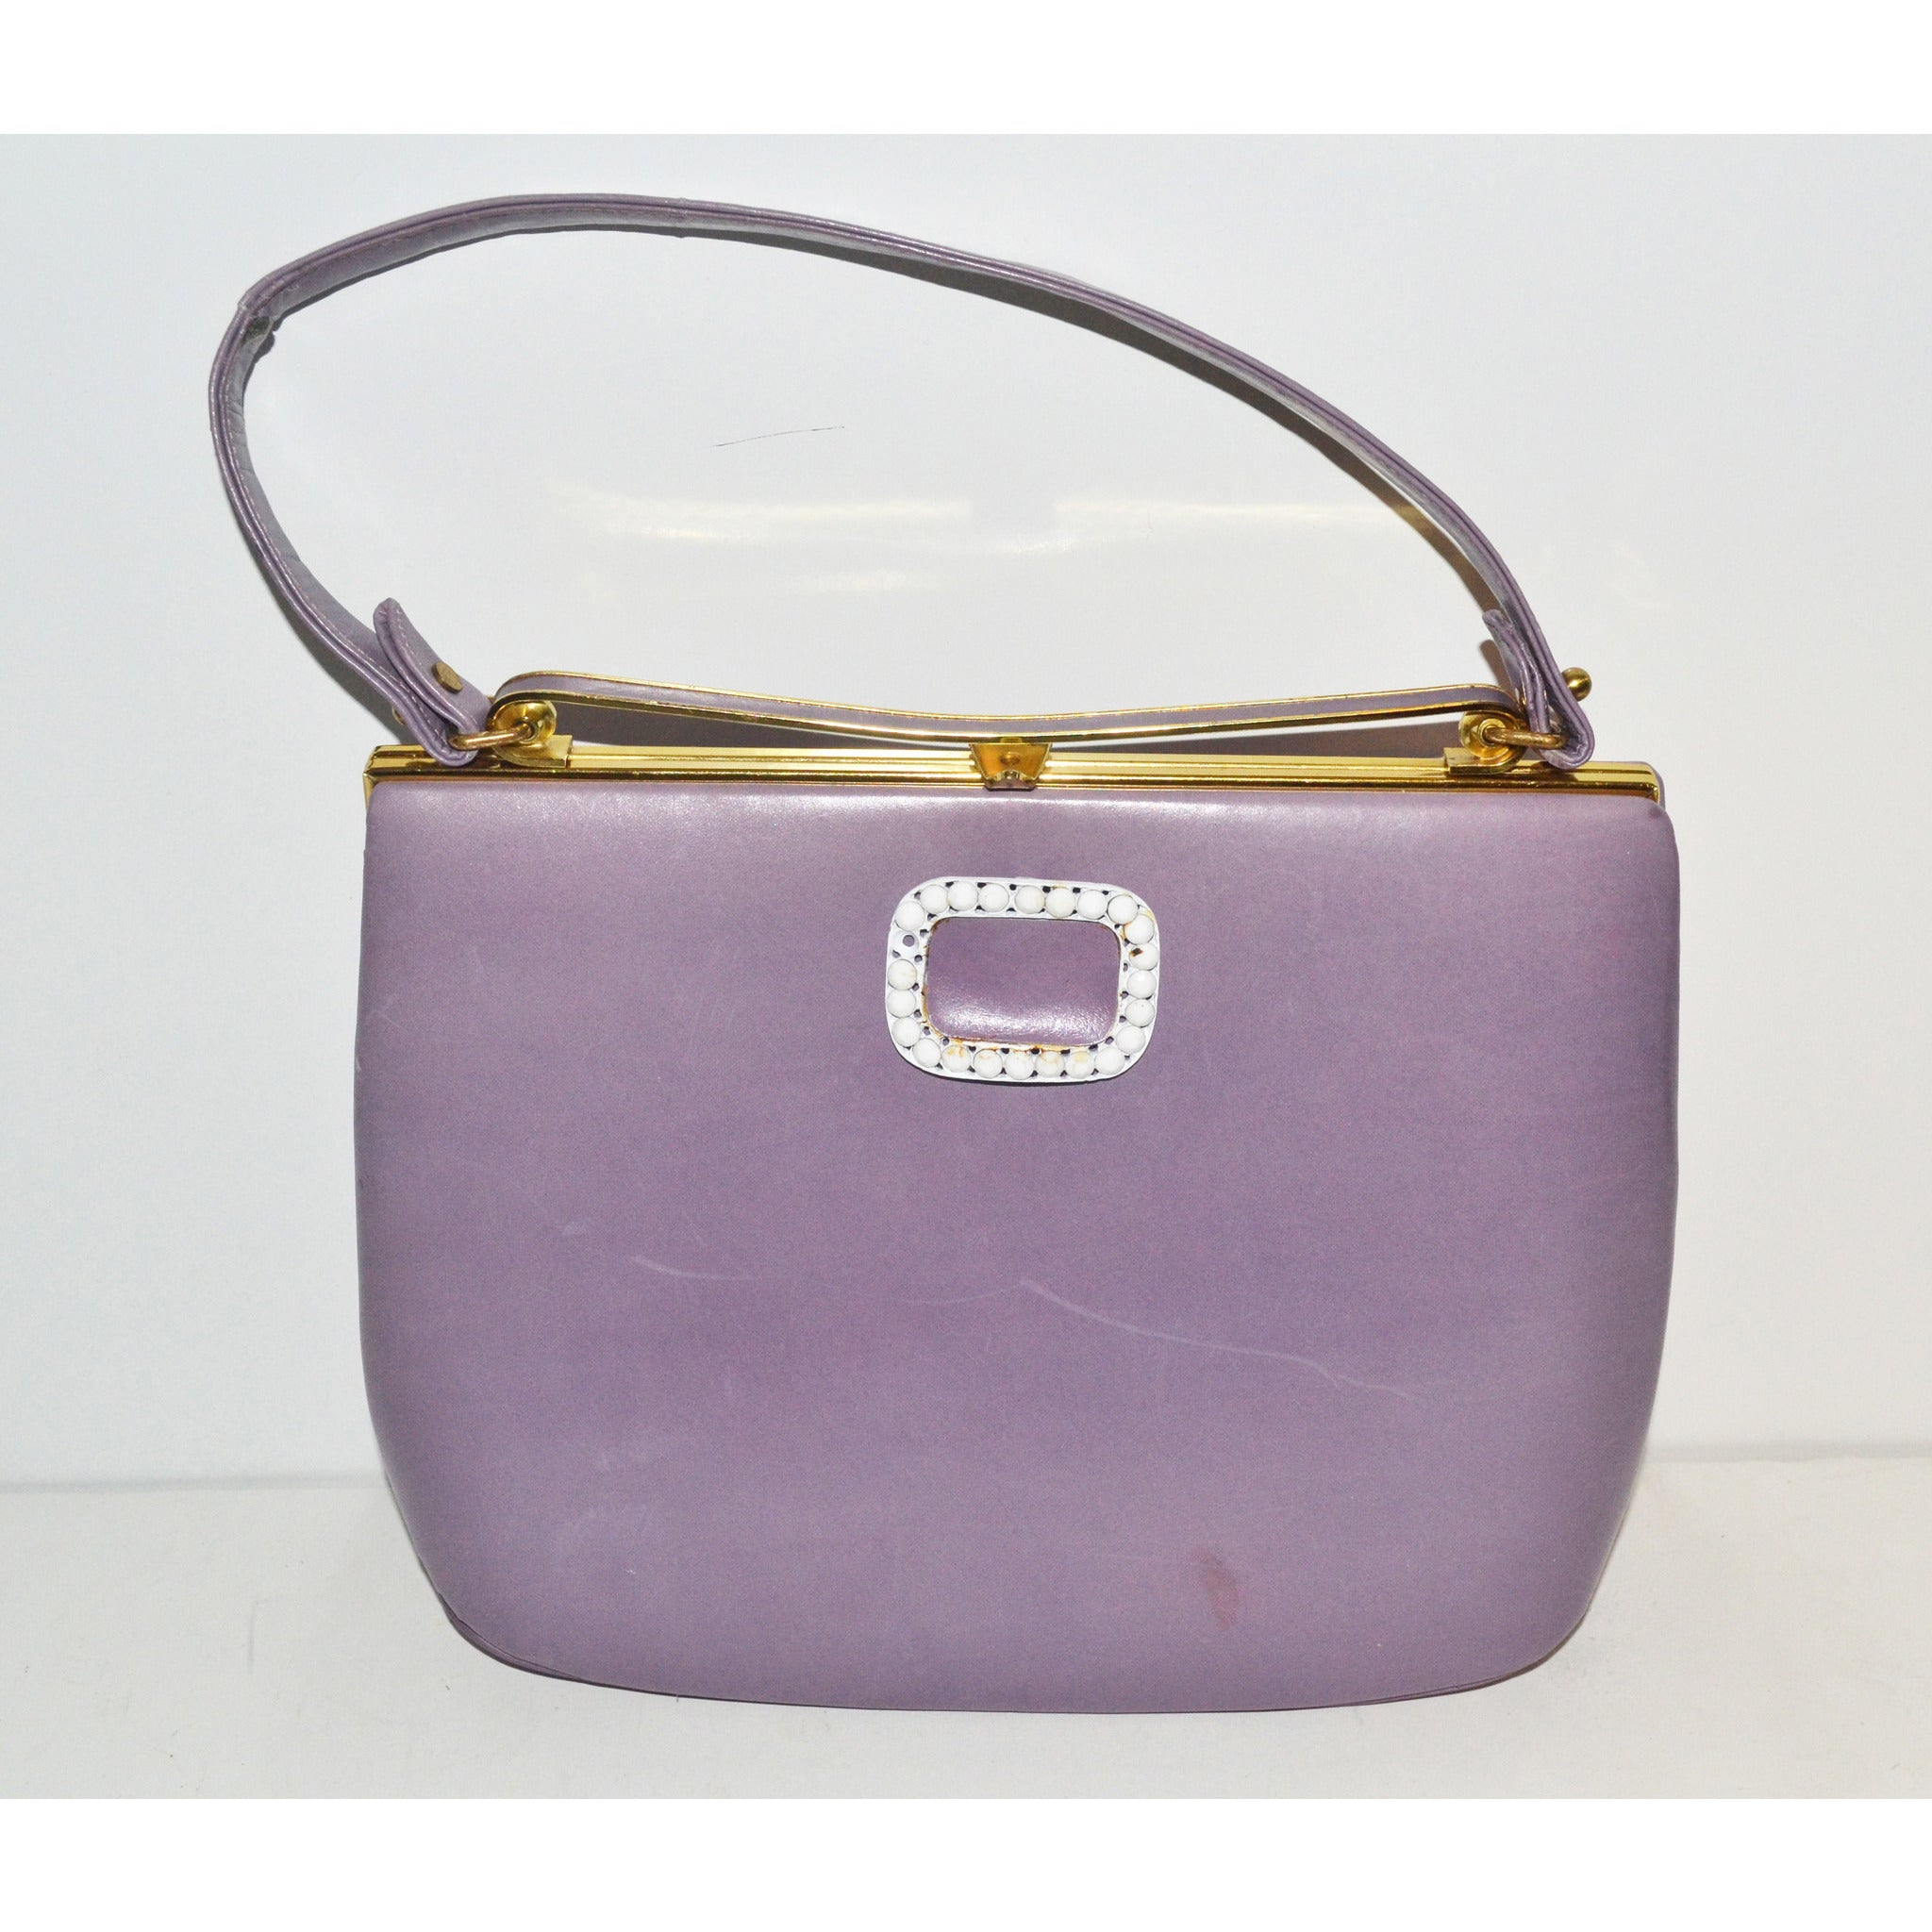 Vintage Lilac Leather Purse By Nicholas Reich